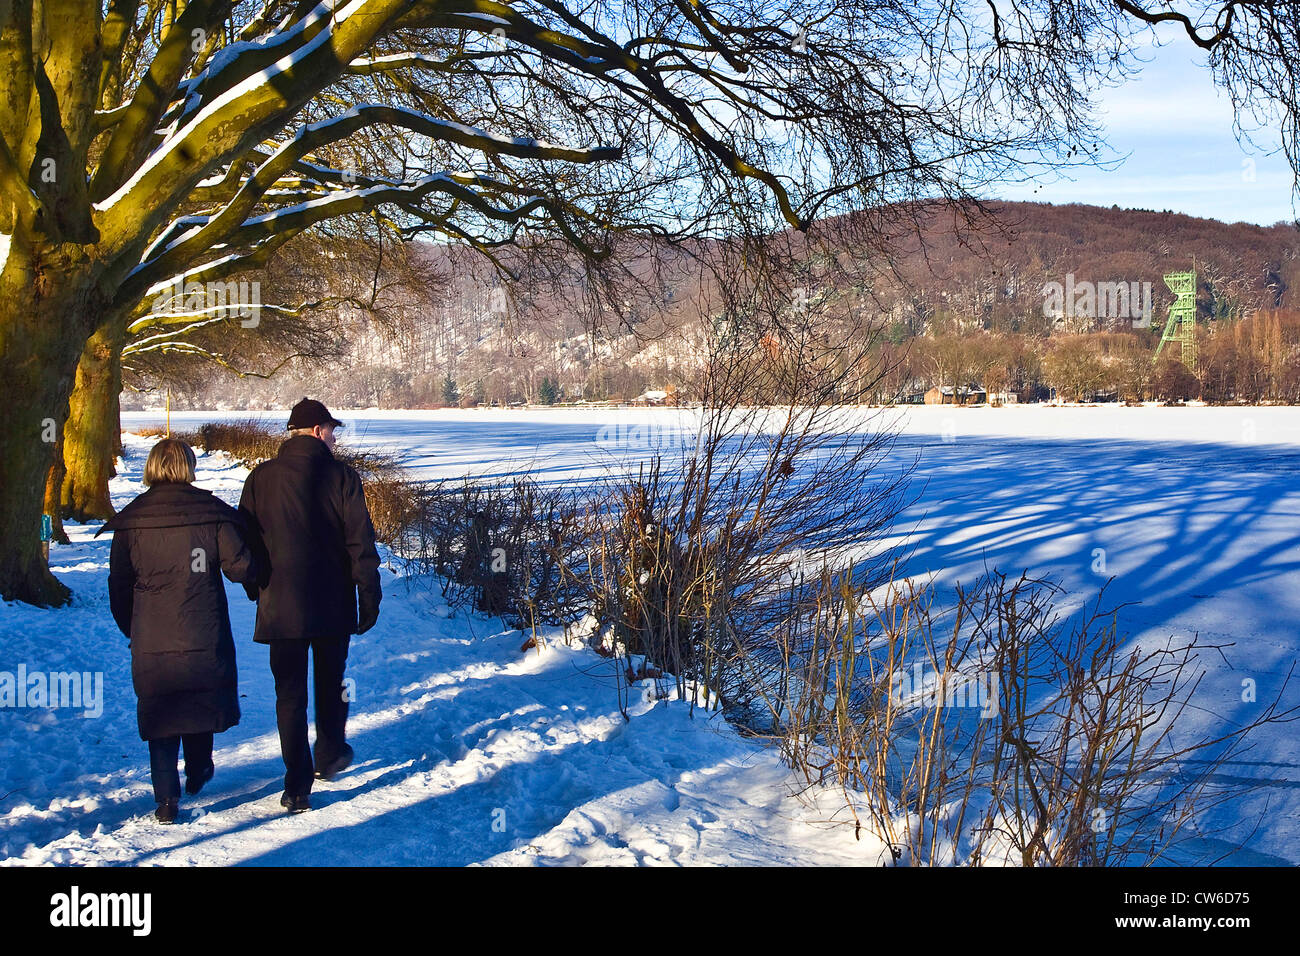 couple at frozen Baldeney Lake, in the background a pit frame of coal mine Carl Funcke, Germany, North Rhine-Westphalia, Stock Photo